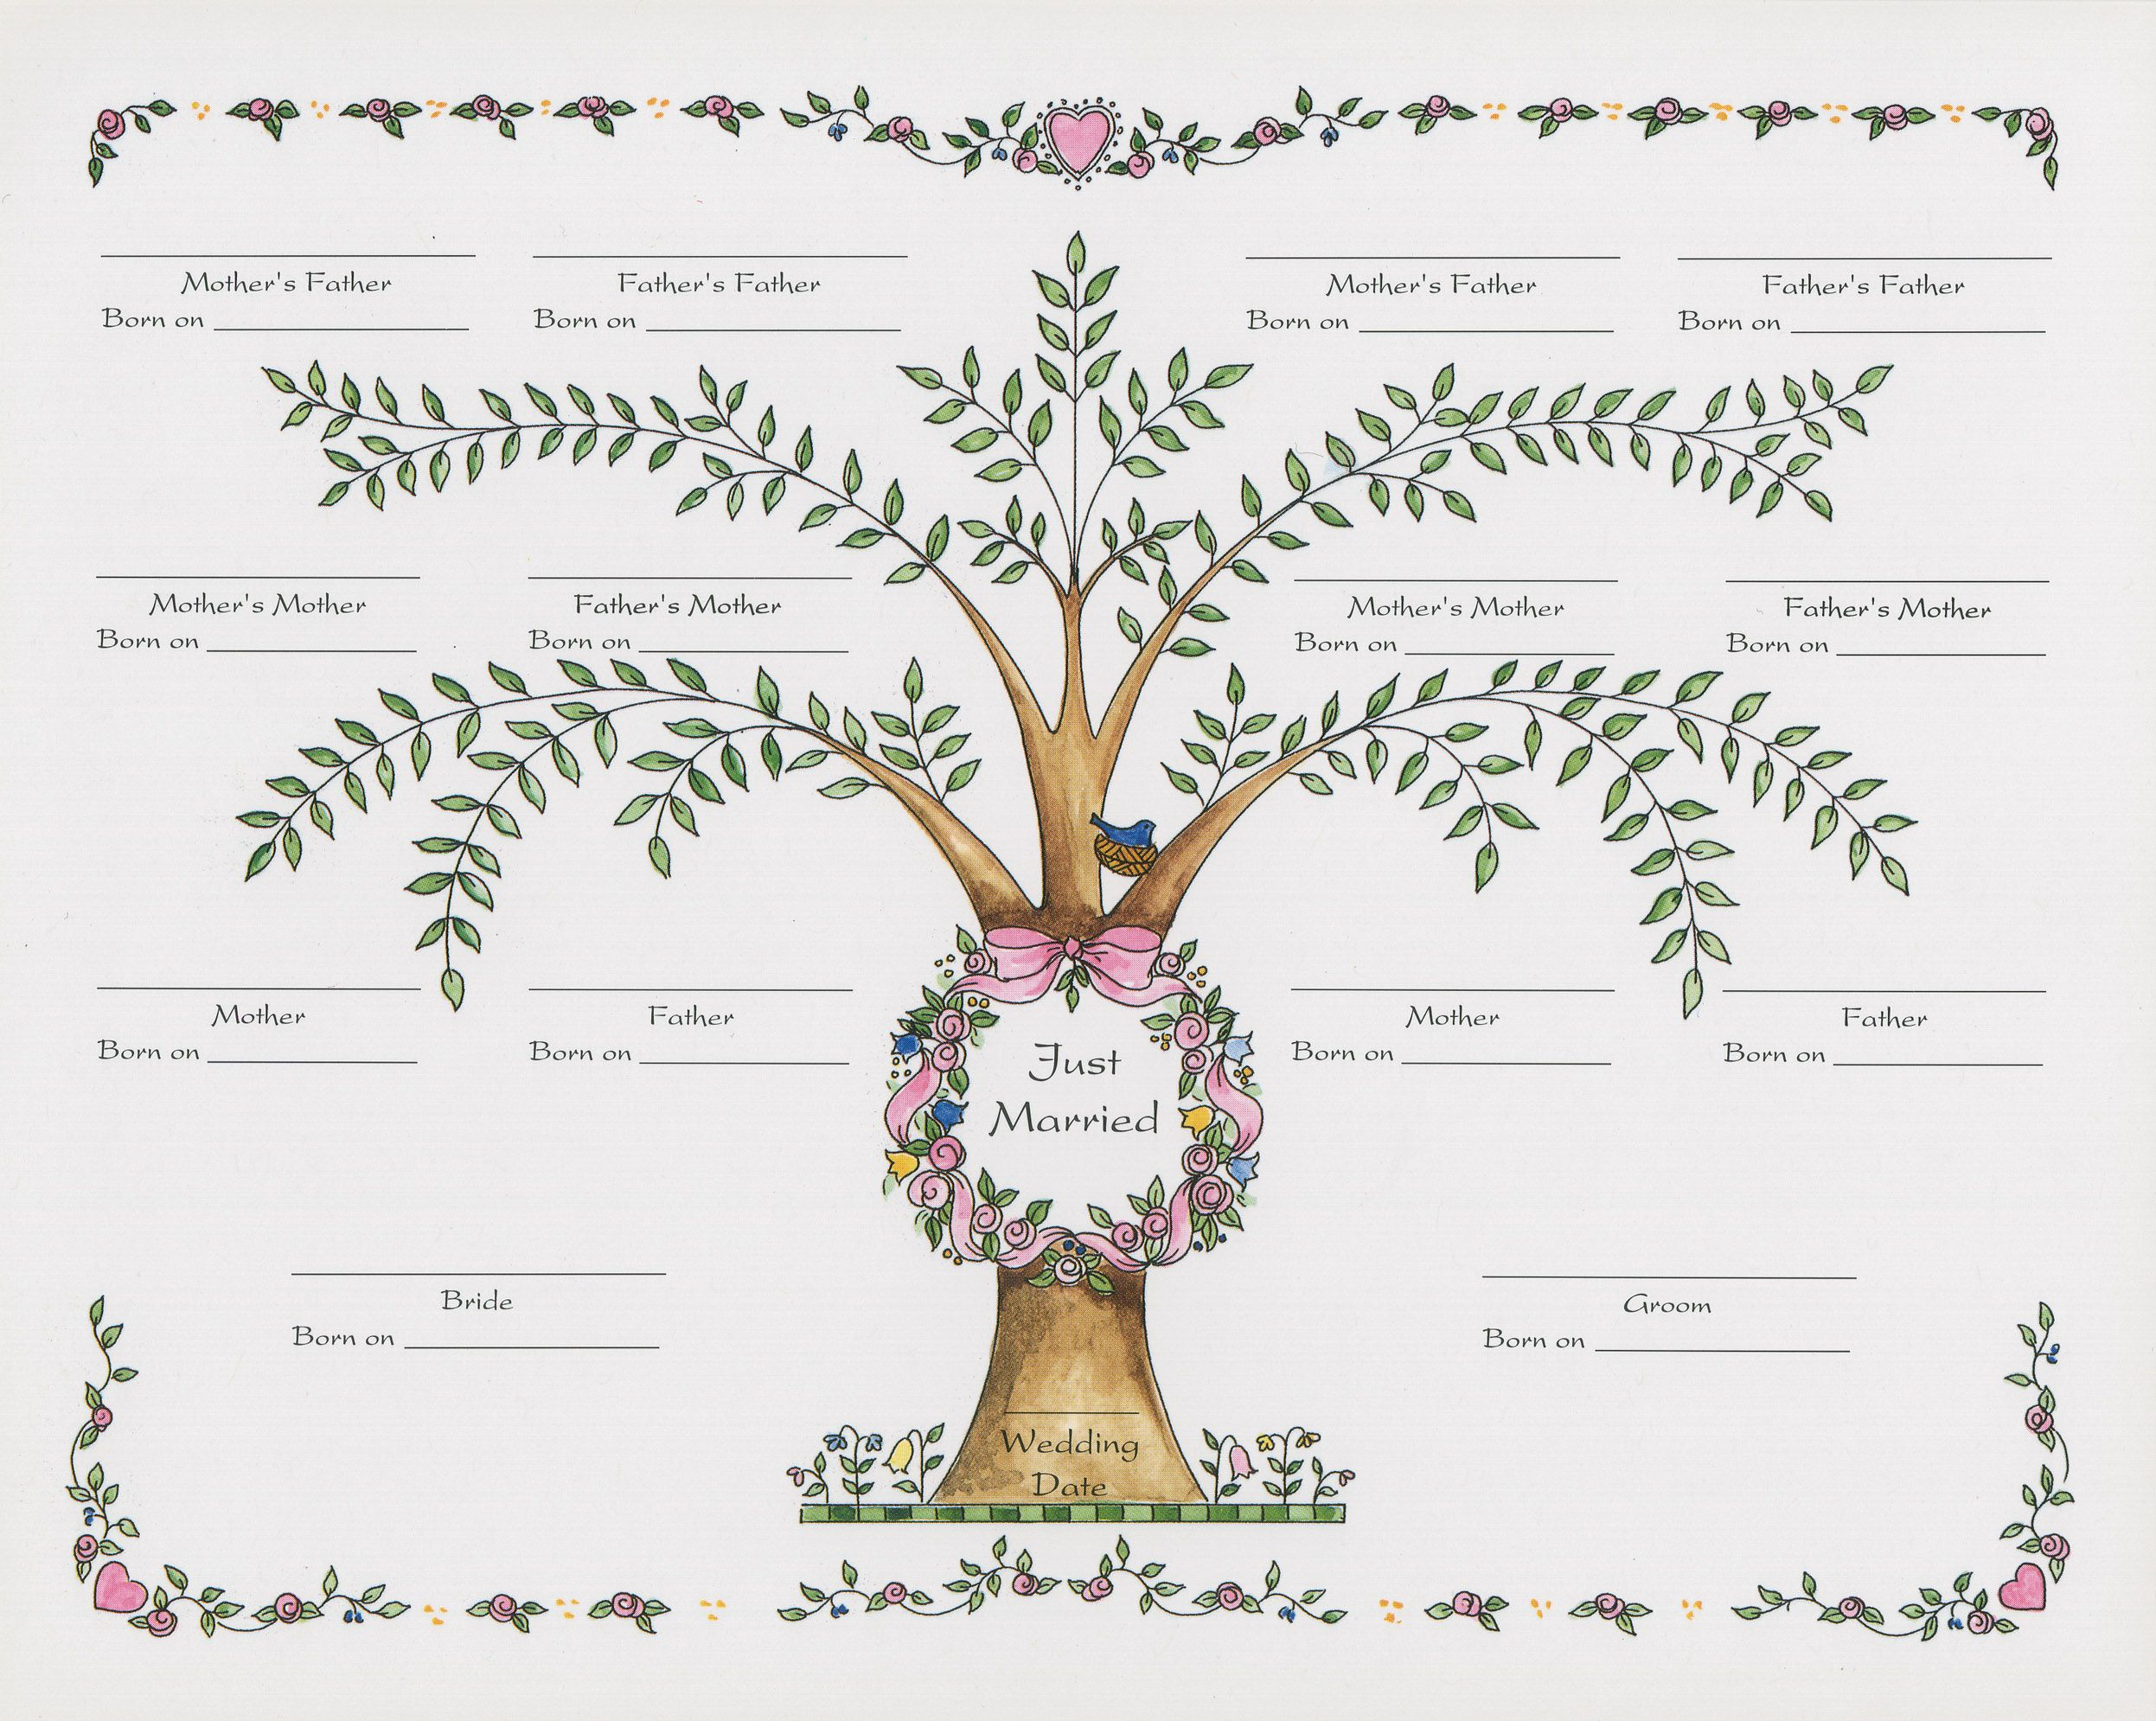 Fun family tree template with hearts Stammbaum vorlage